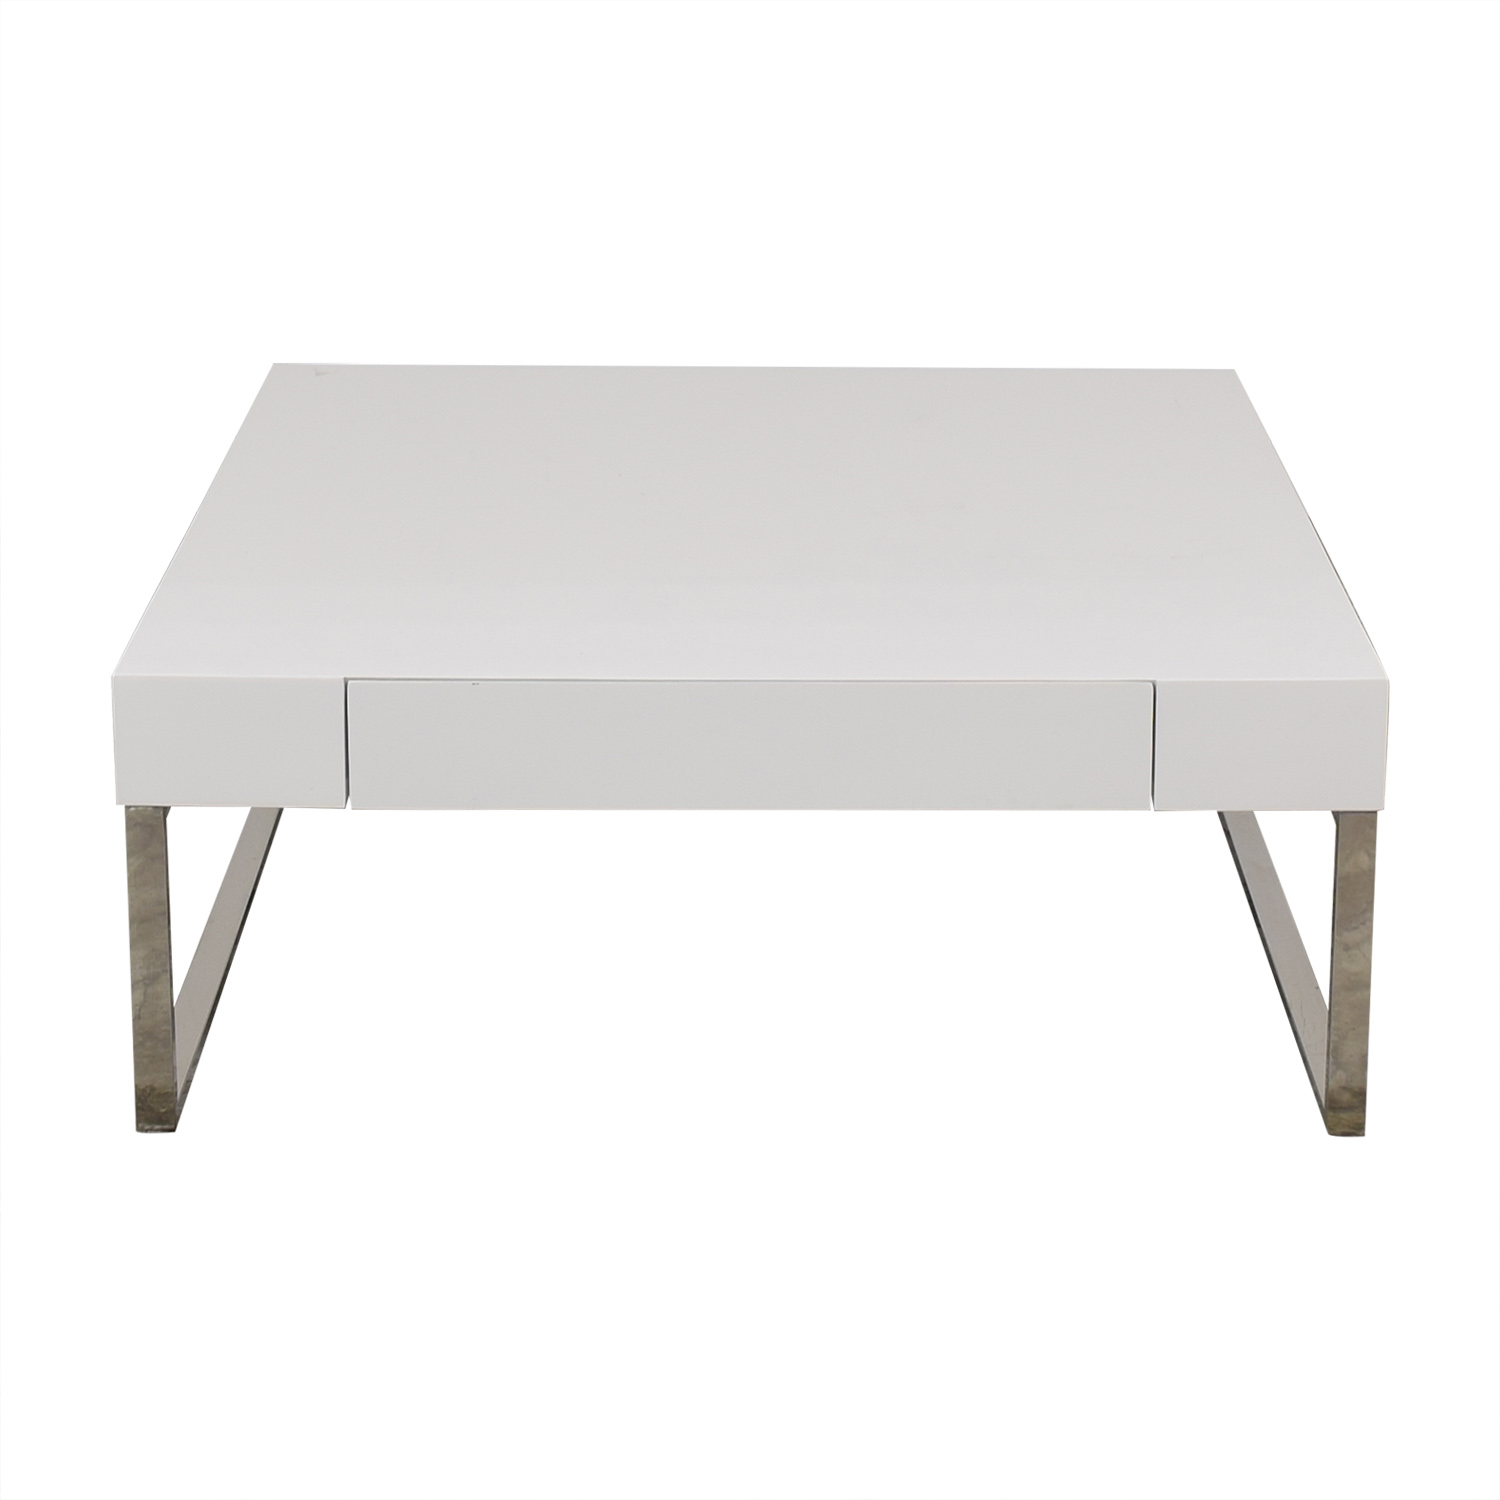 Modani Gavino Coffee Table / Tables